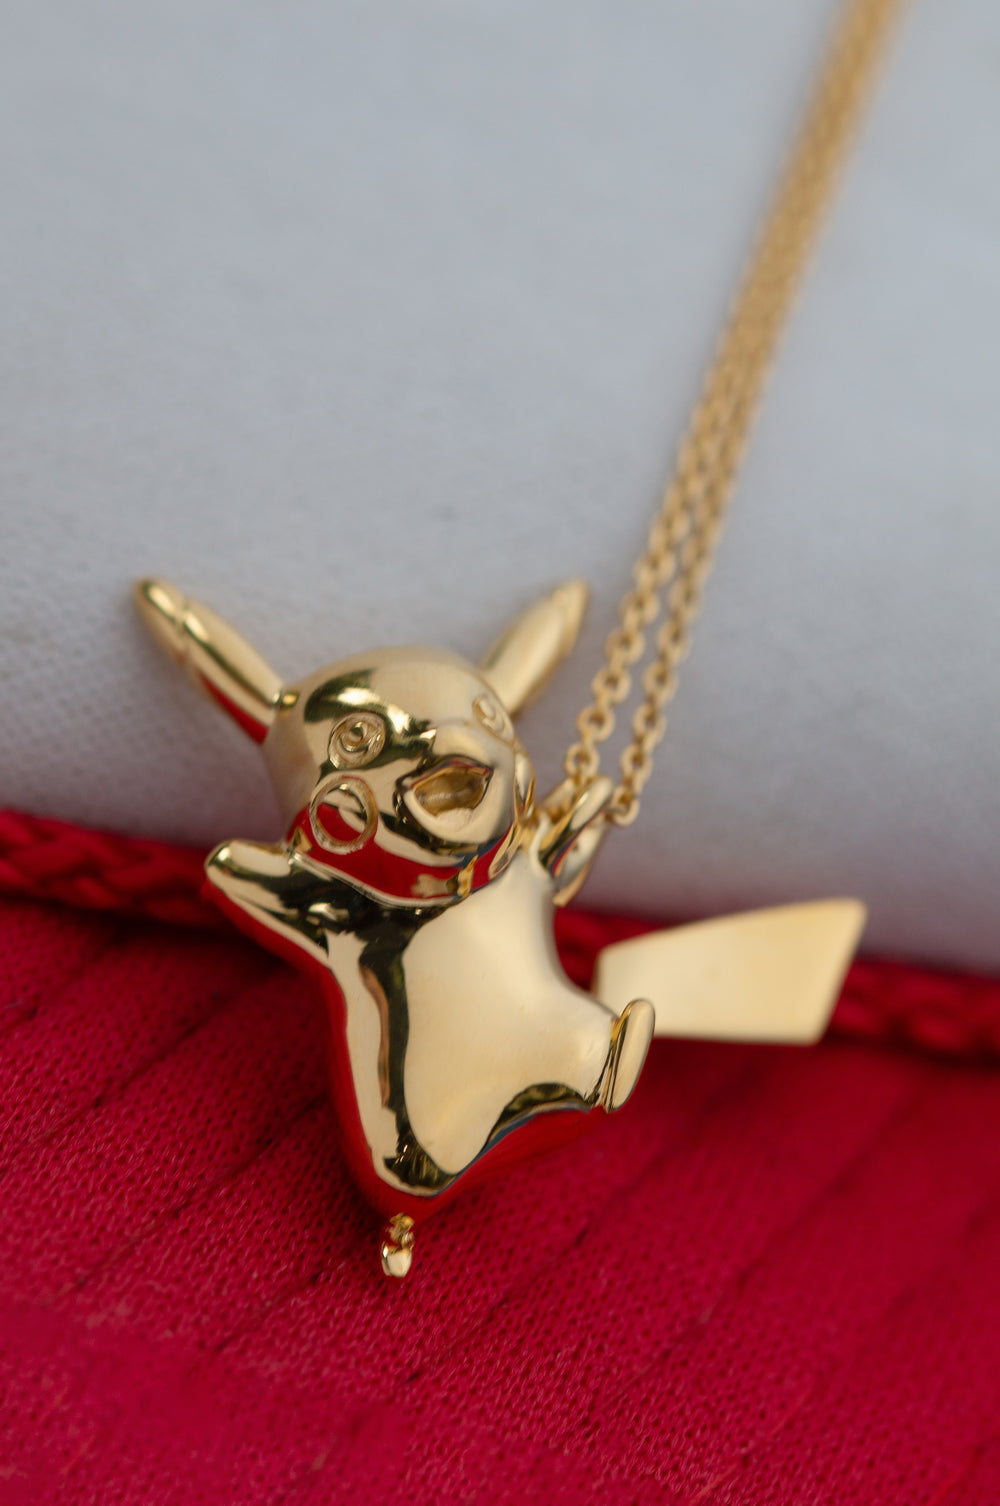 Pokémon X RockLove Pikachu Necklace